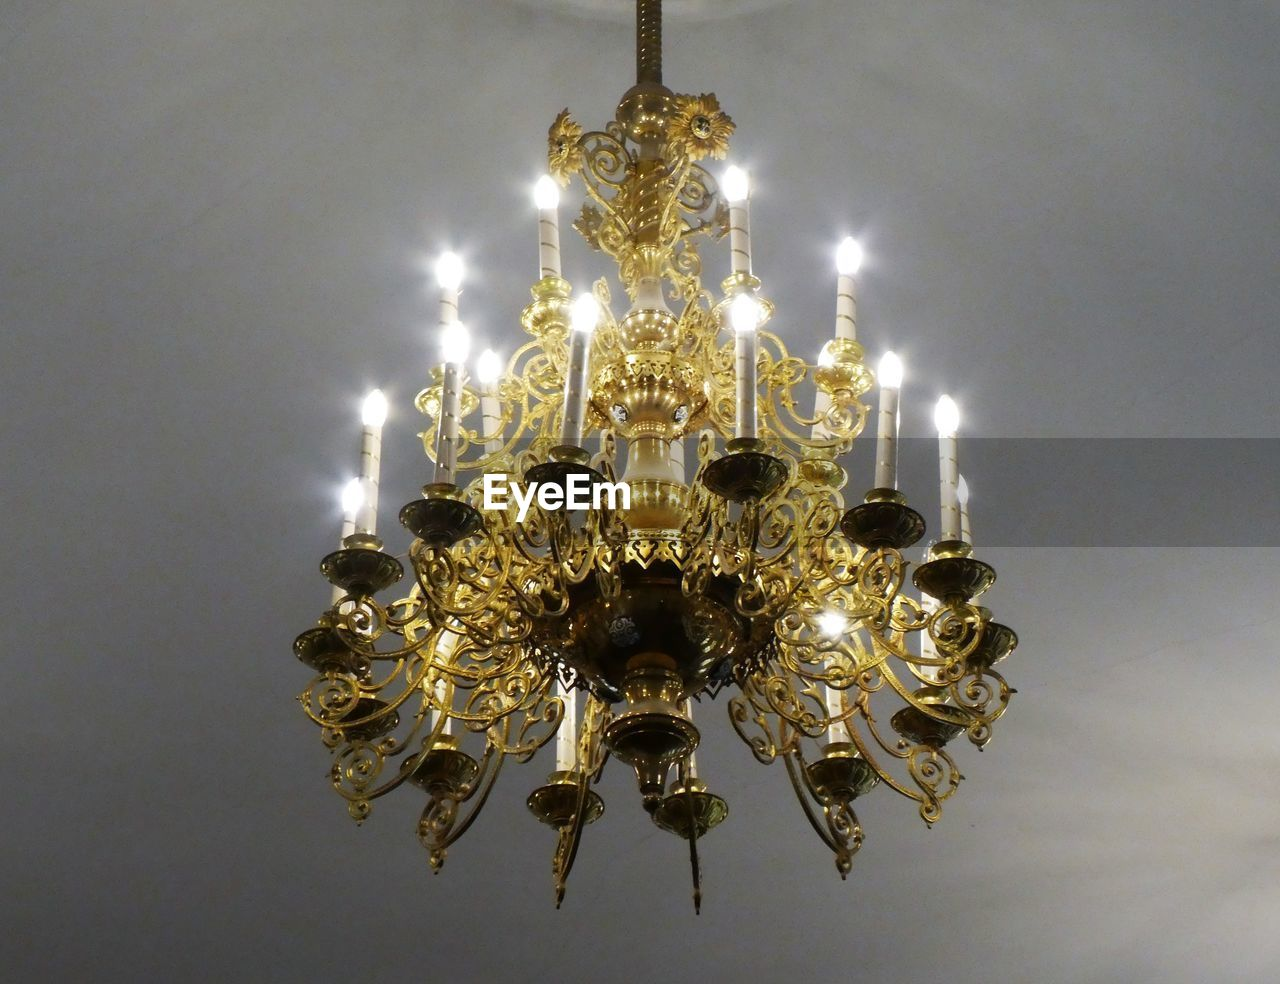 illuminated, chandelier, lighting equipment, hanging, glowing, ceiling, low angle view, no people, decoration, electricity, indoors, luxury, light, wealth, ornate, electric light, pendant light, crystal, design, close-up, electric lamp, light fixture